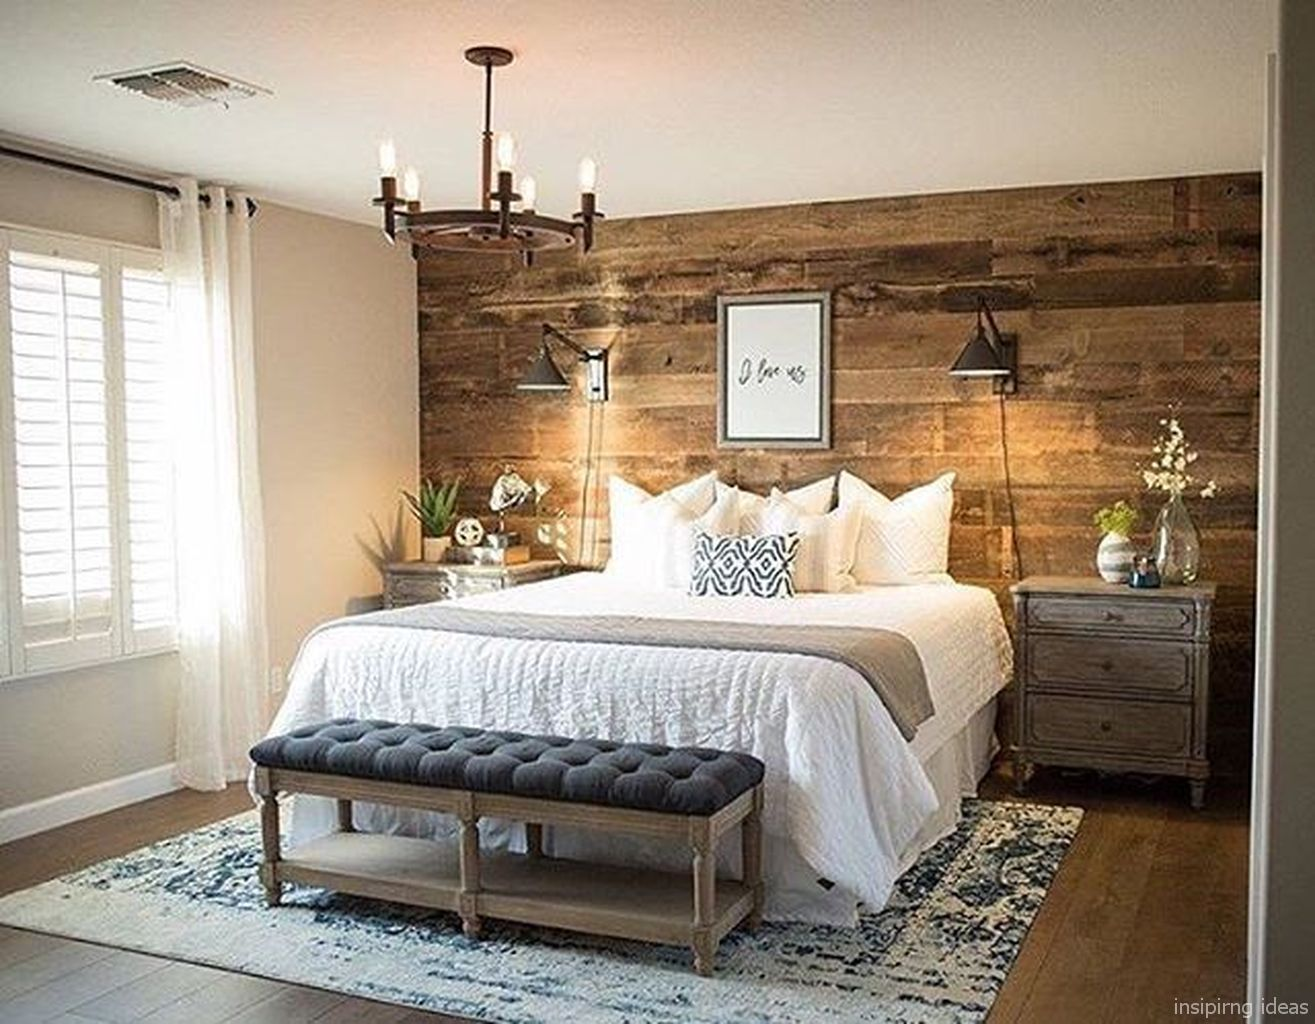 Nice 70 Rustic Home Decor Ideas for Bedroom Schlafzimmer